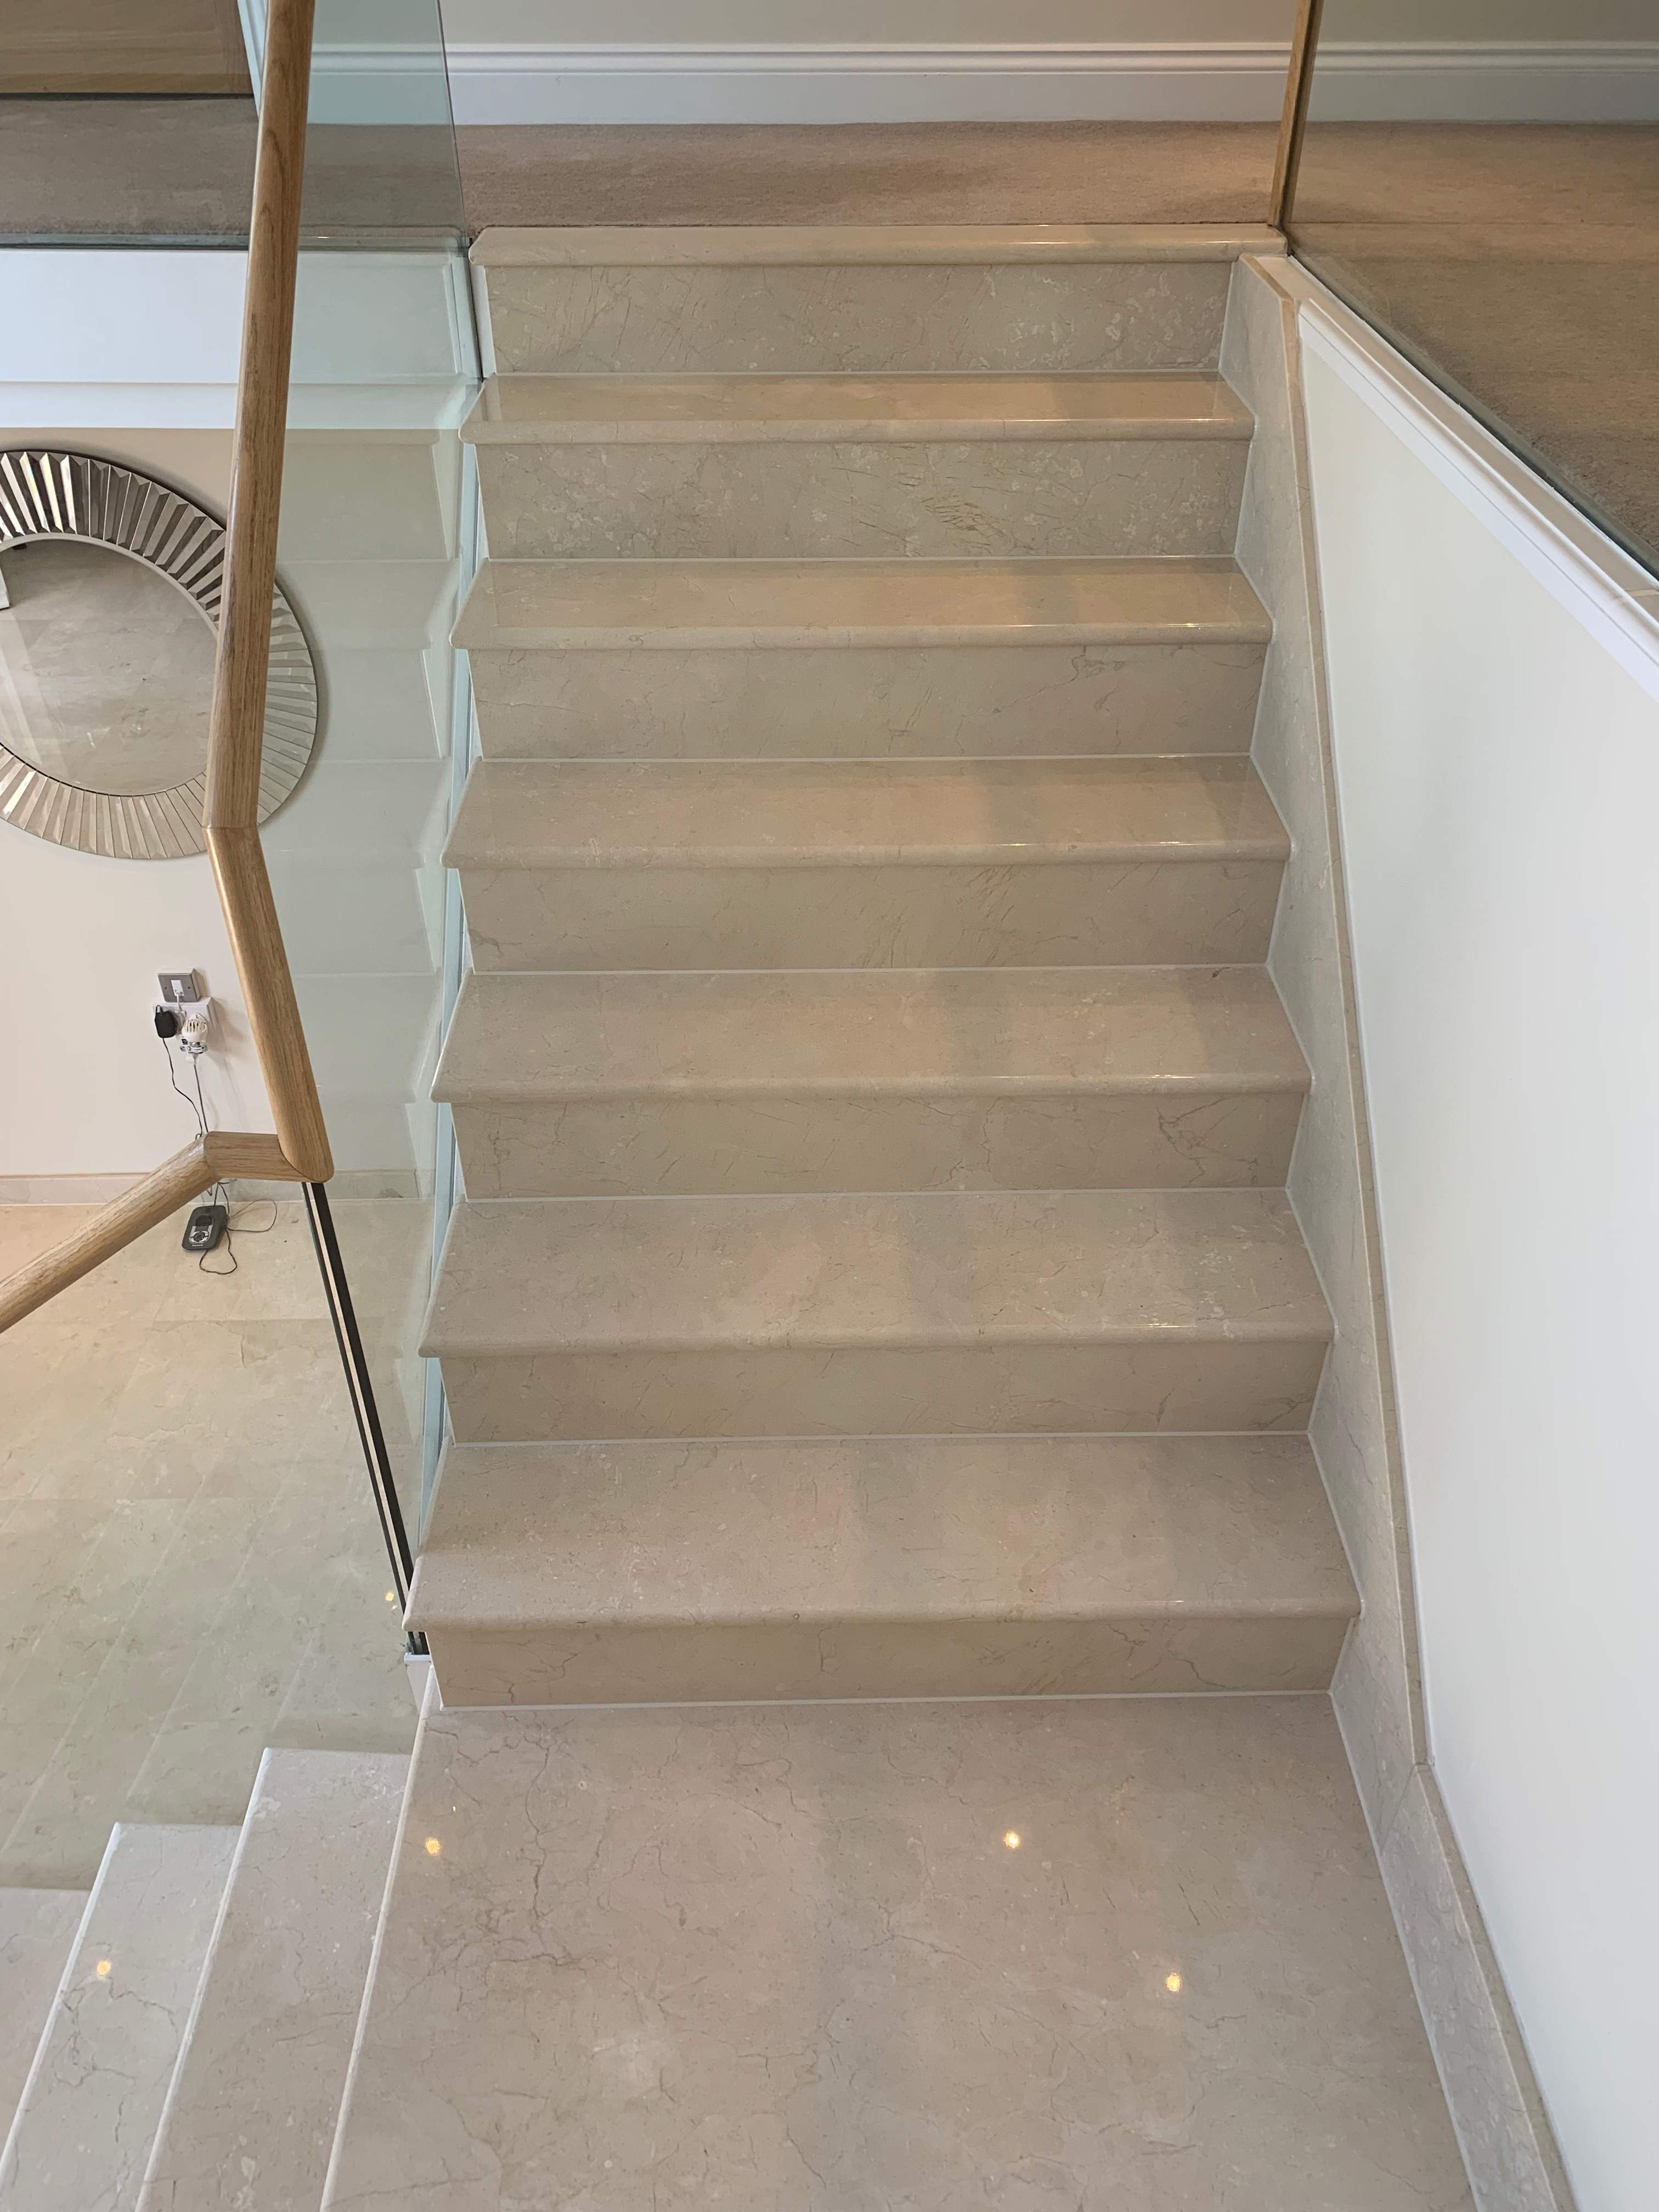 apply silicone to marble steps